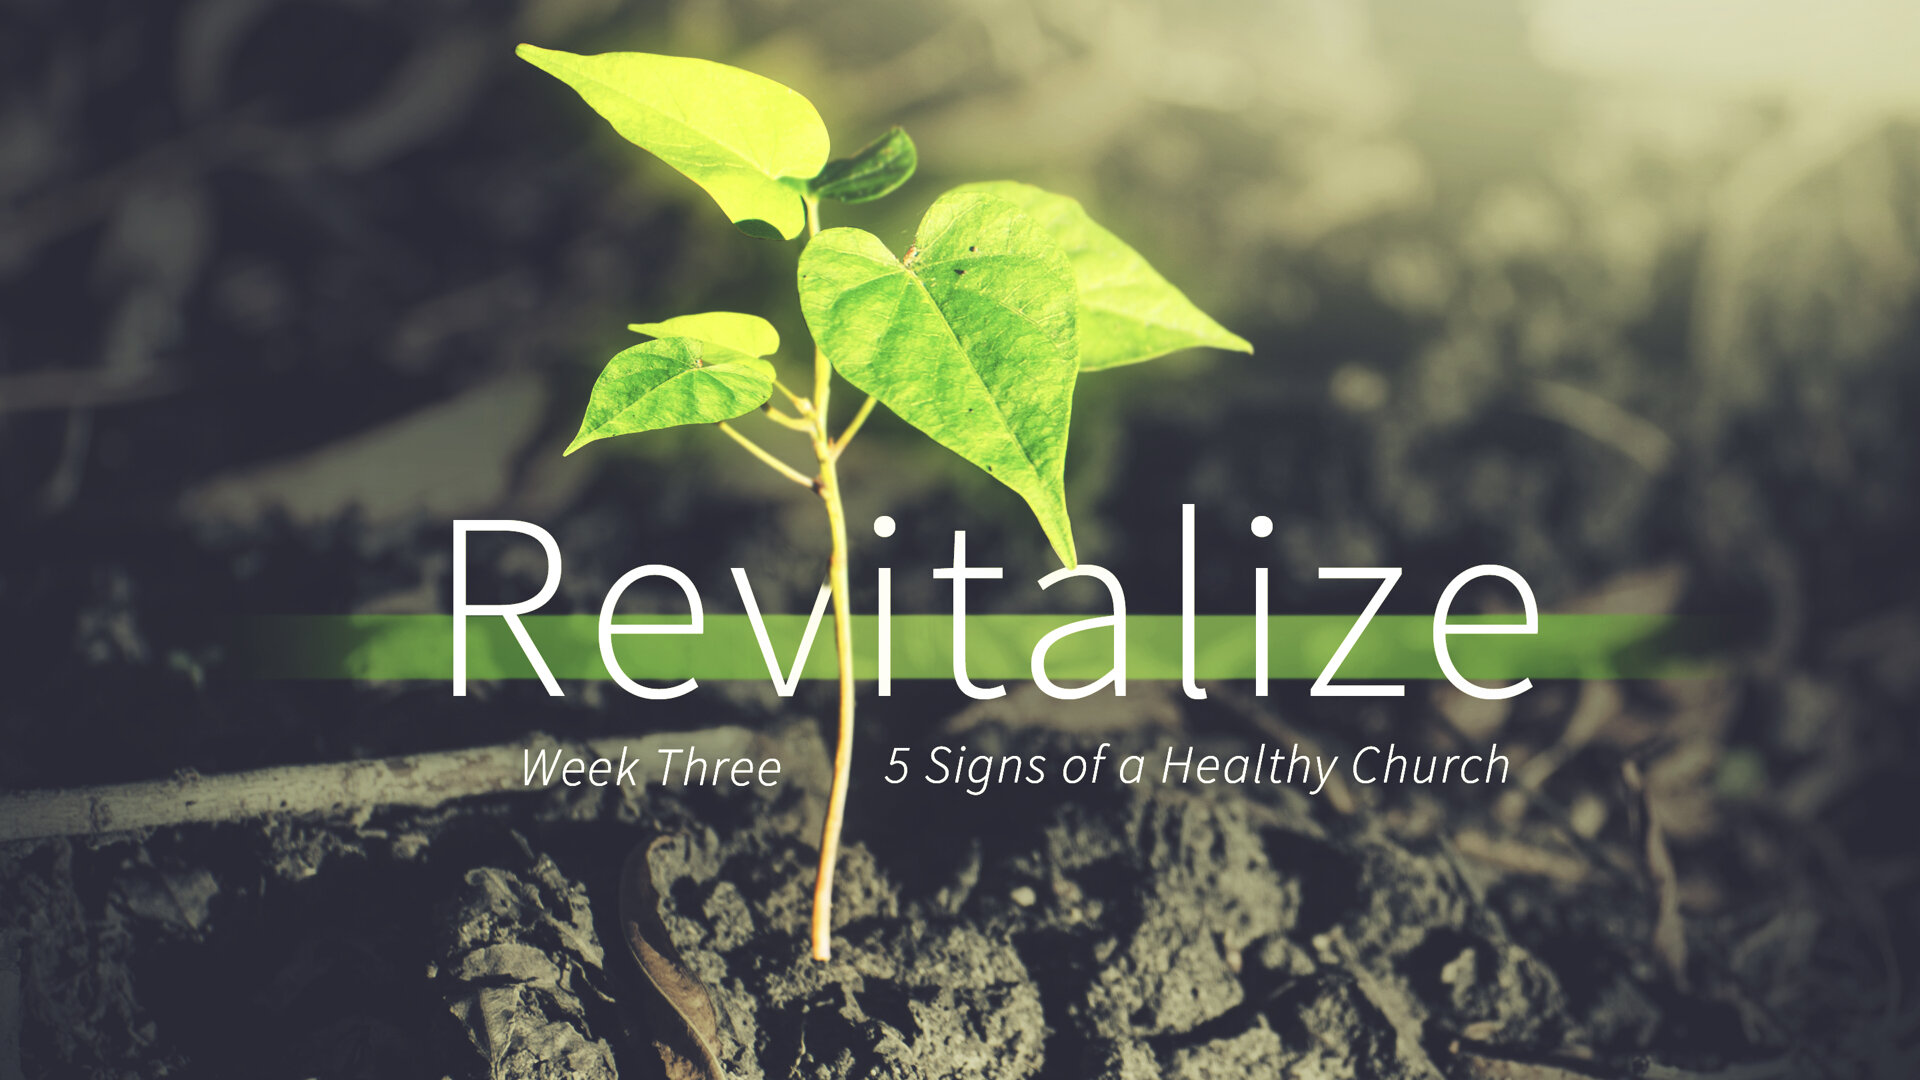 Revitalize - Week 3 - 5 Signs of a Healthy Church copy.032.jpeg